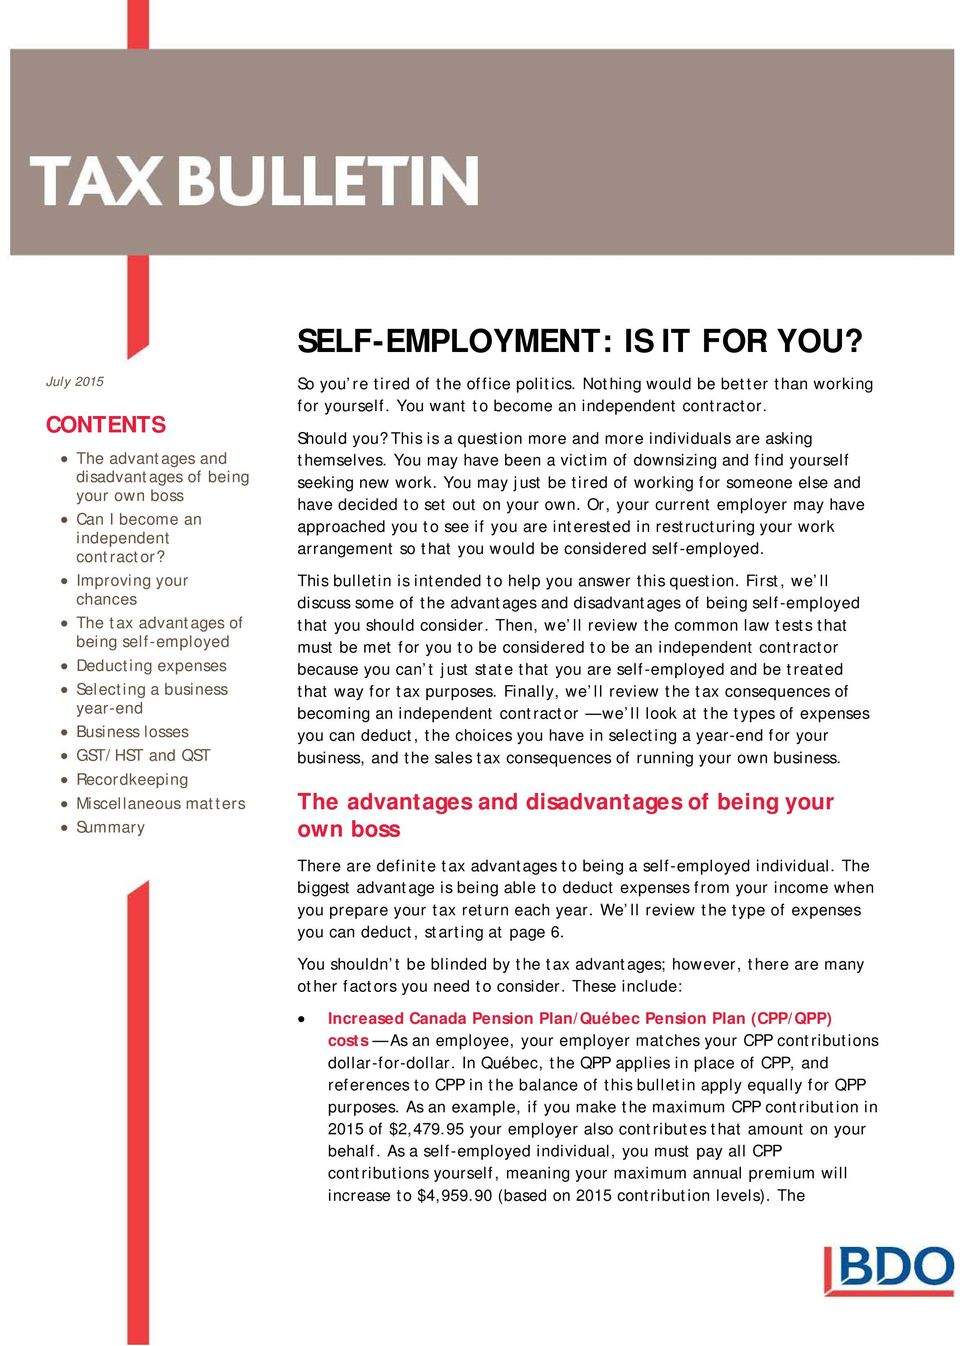 SELF-EMPLOYMENT: IS IT FOR YOU? So you re tired of the office politics. Nothing would be better than working for yourself. You want to become an independent contractor. Should you?